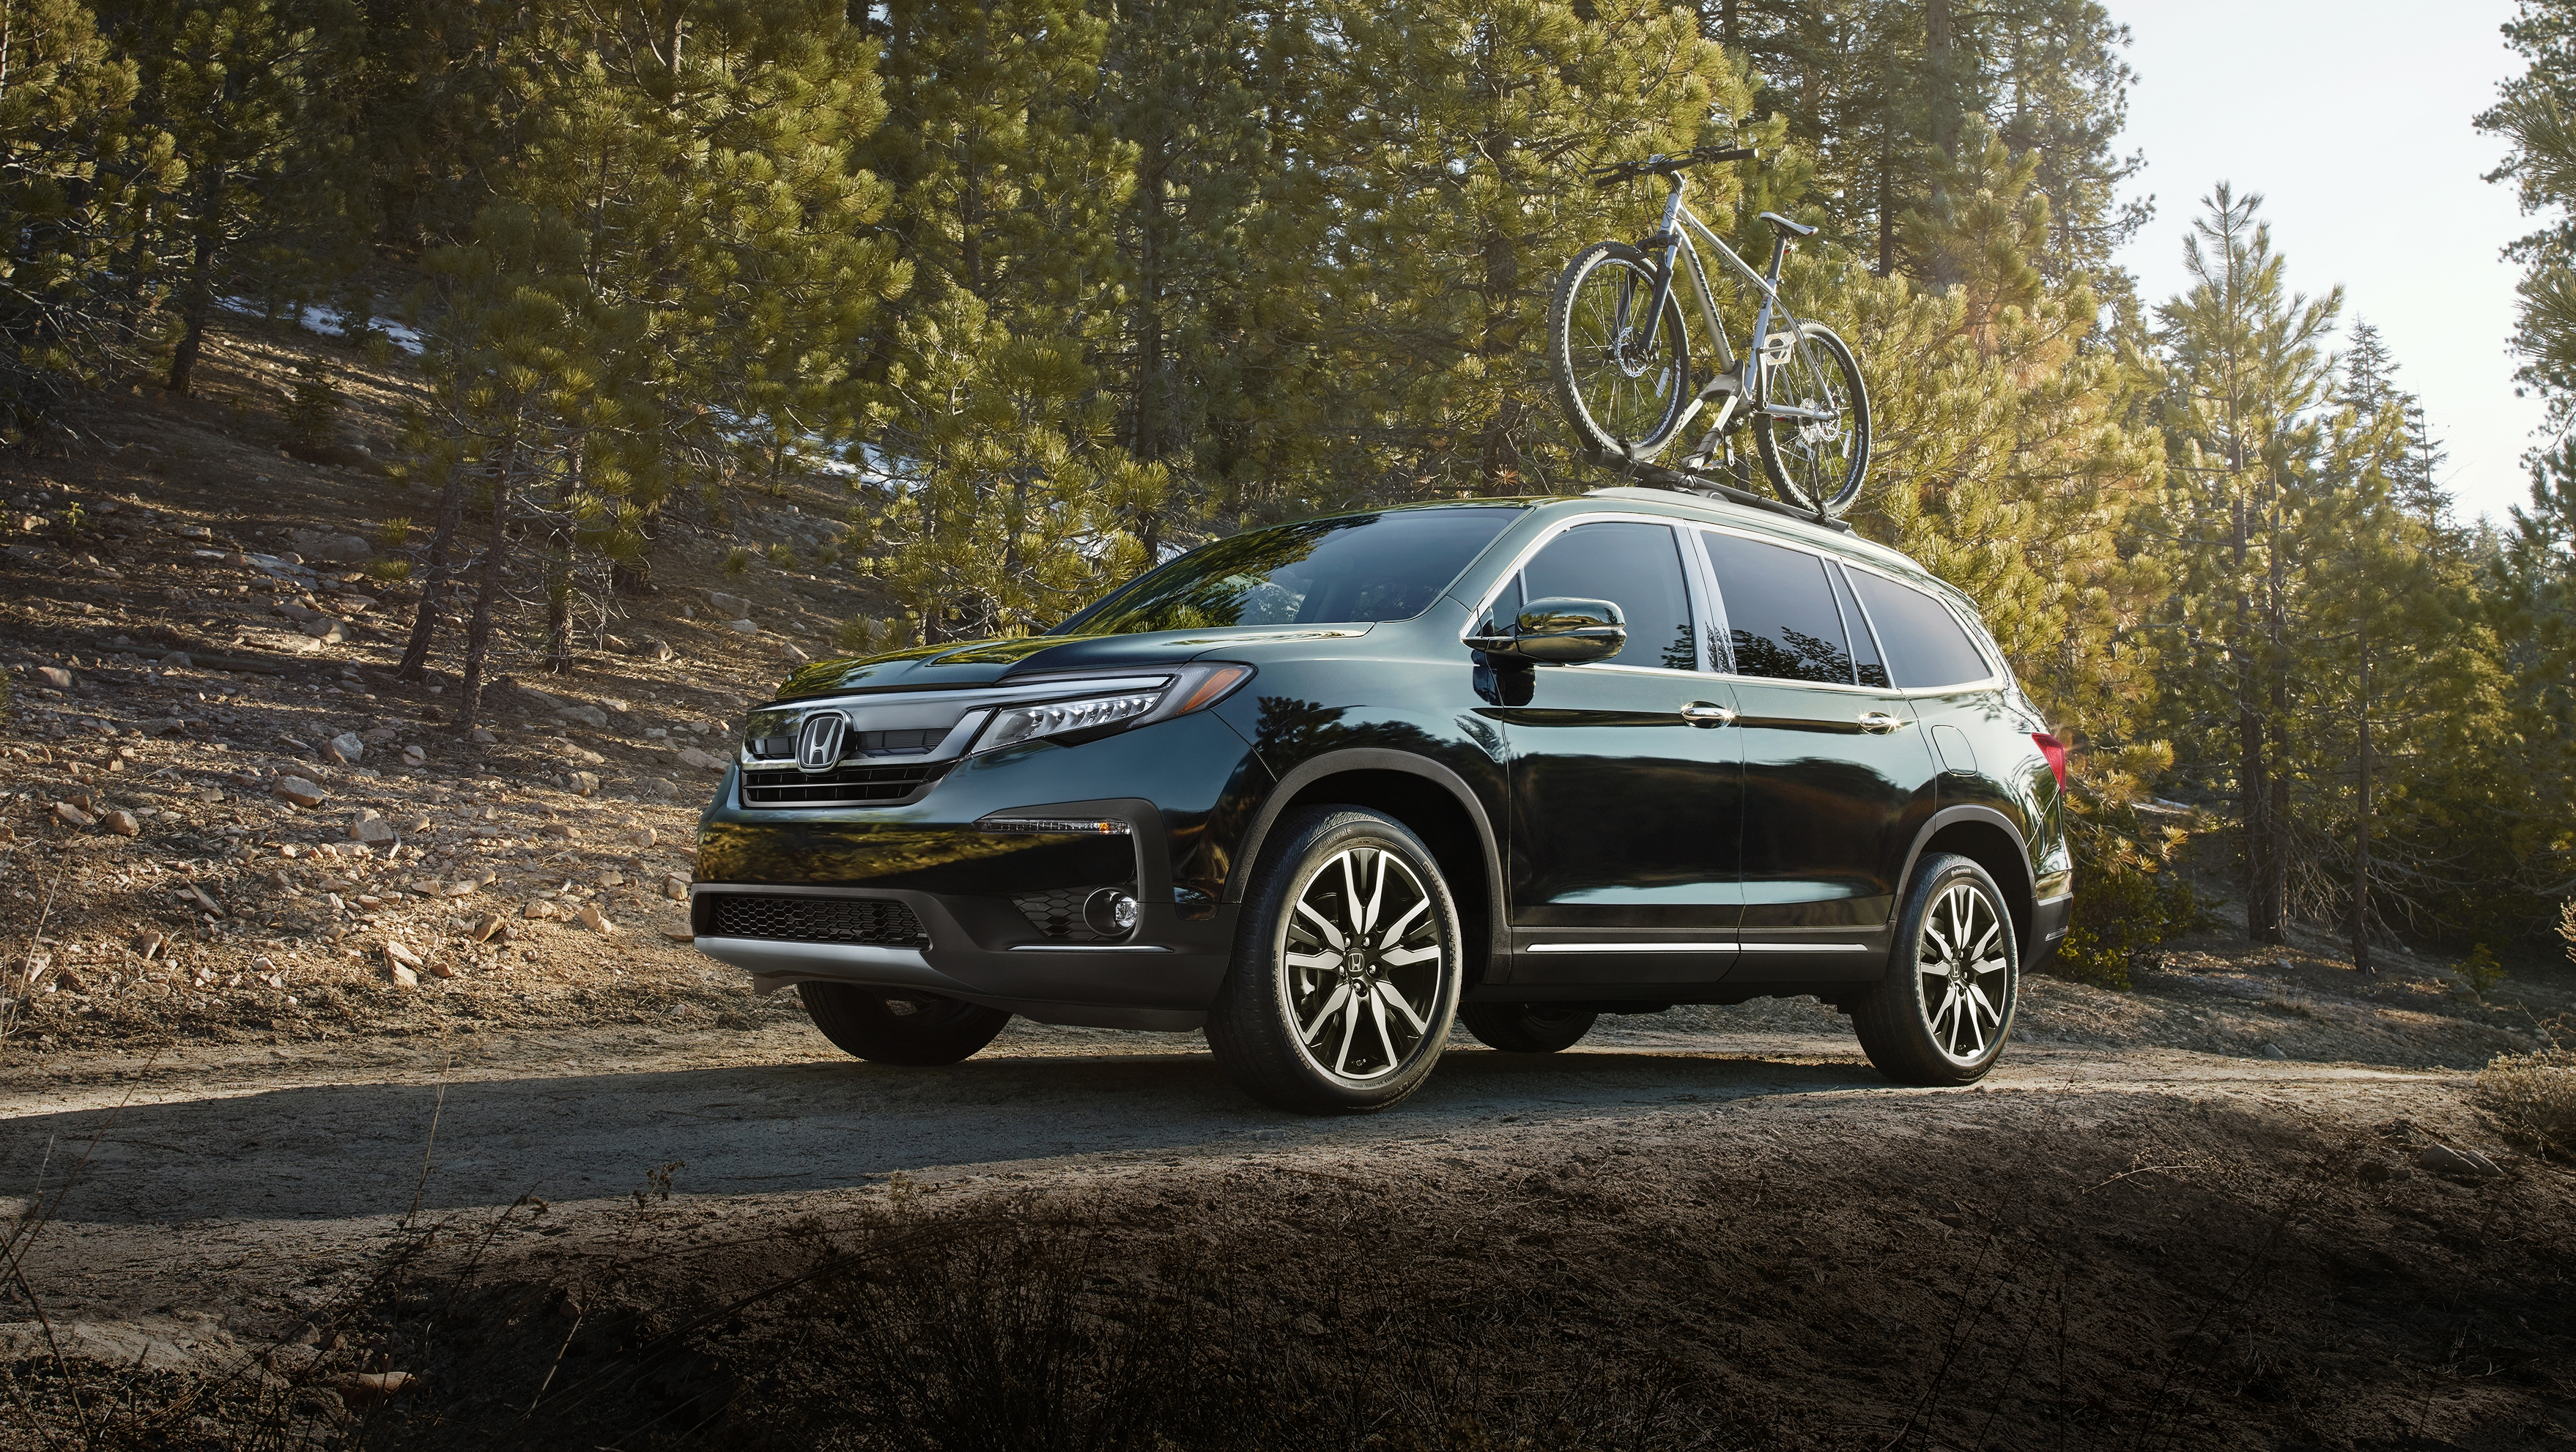 2016 - 2019 Honda Pilot | Top Speed. »